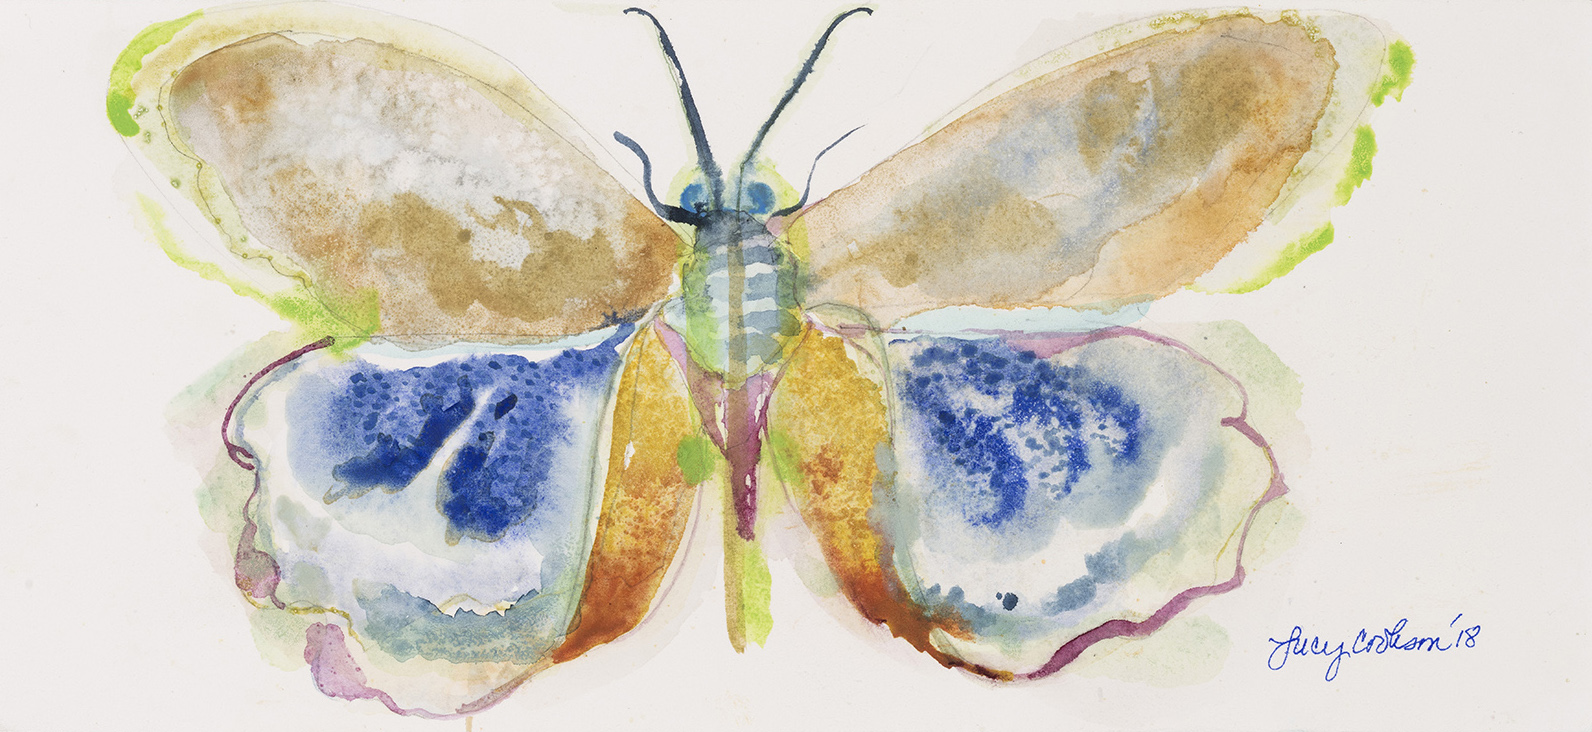 Butterfly, 2018, Watercolor on paper, 4 x 10 in.